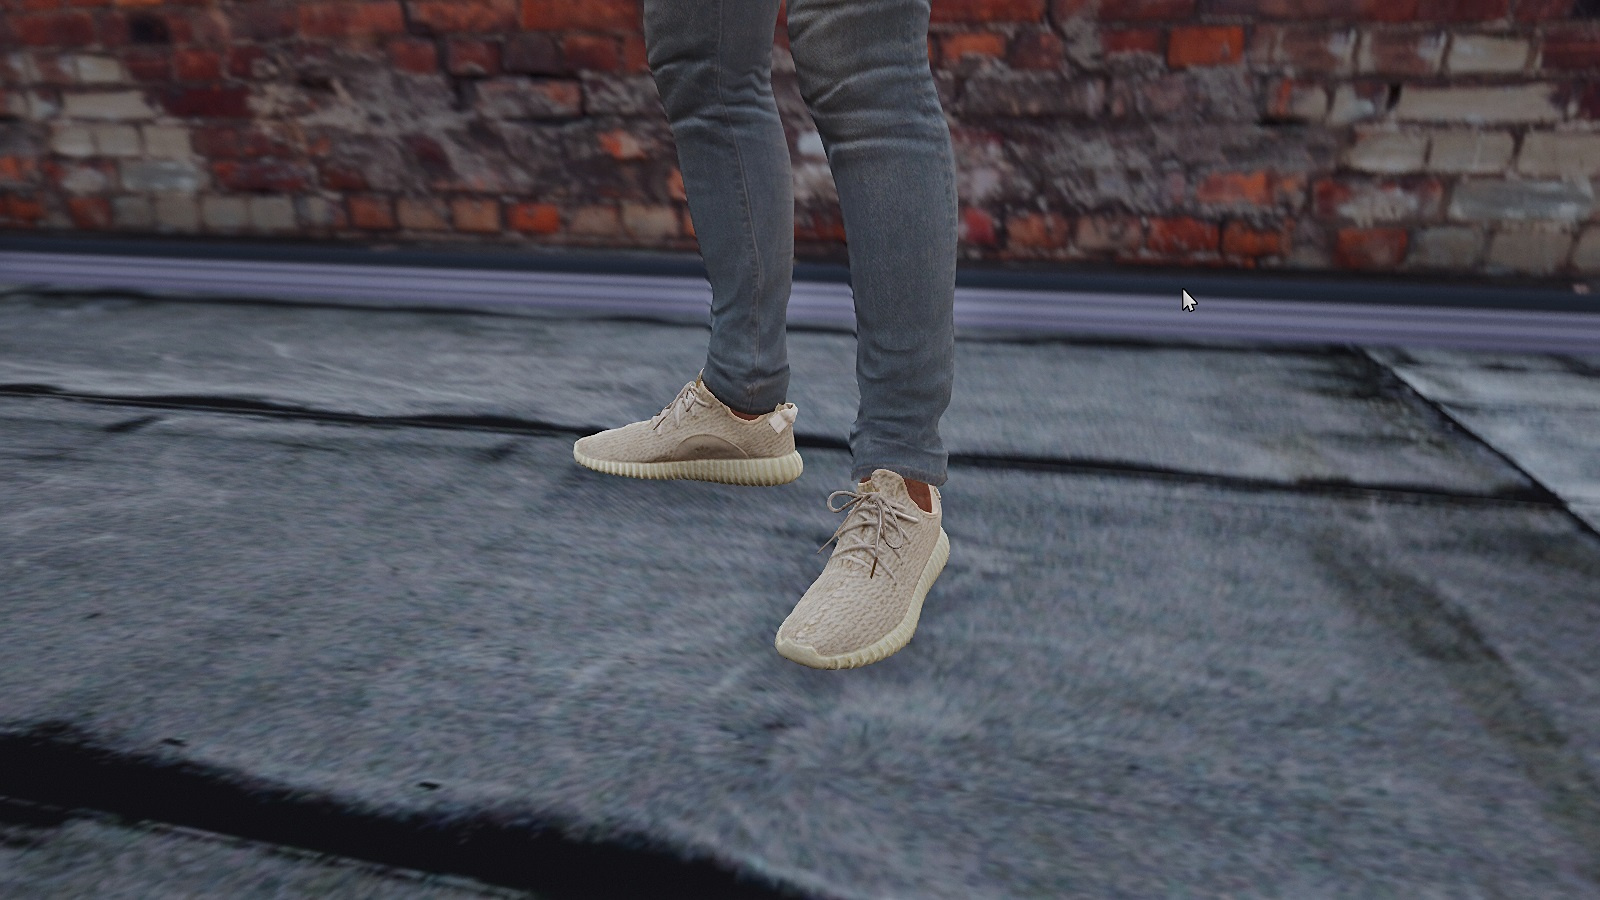 84% Off Adidas yeezy 350 boost sneakers canada High